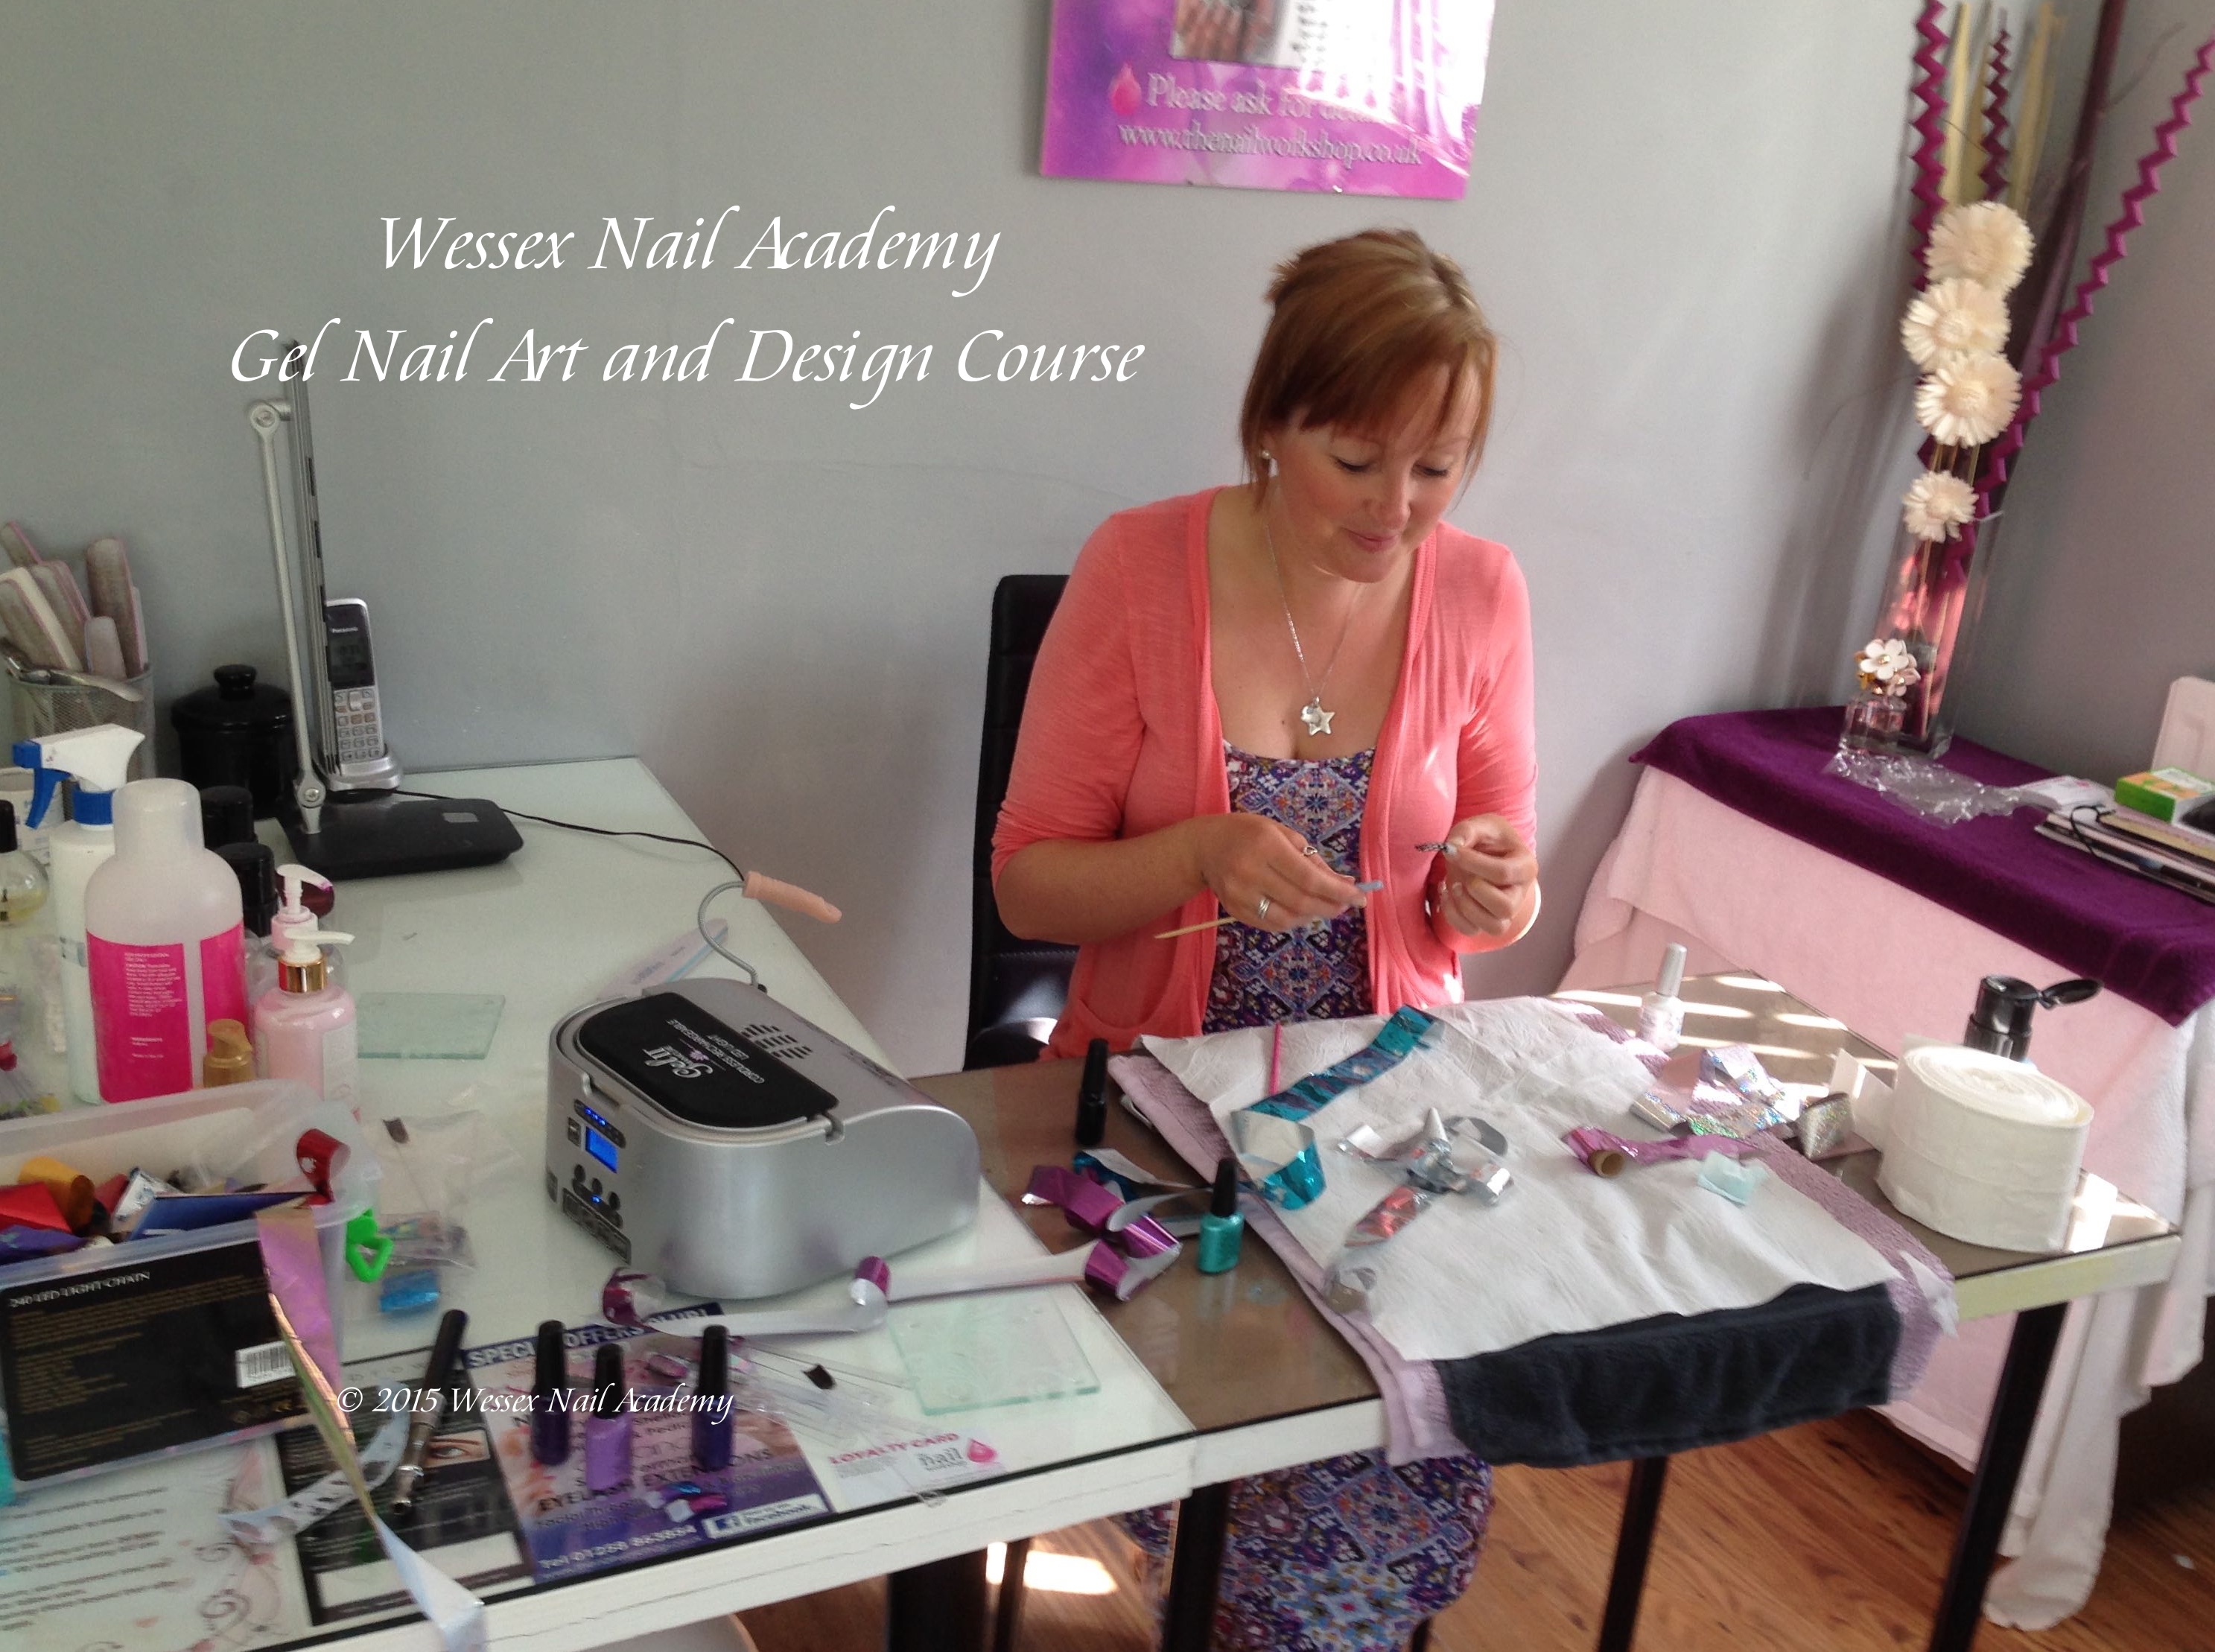 Wessex nail academy nail training course gallery nail art course nail extension training nail training course wessex nail academy okeford prinsesfo Image collections